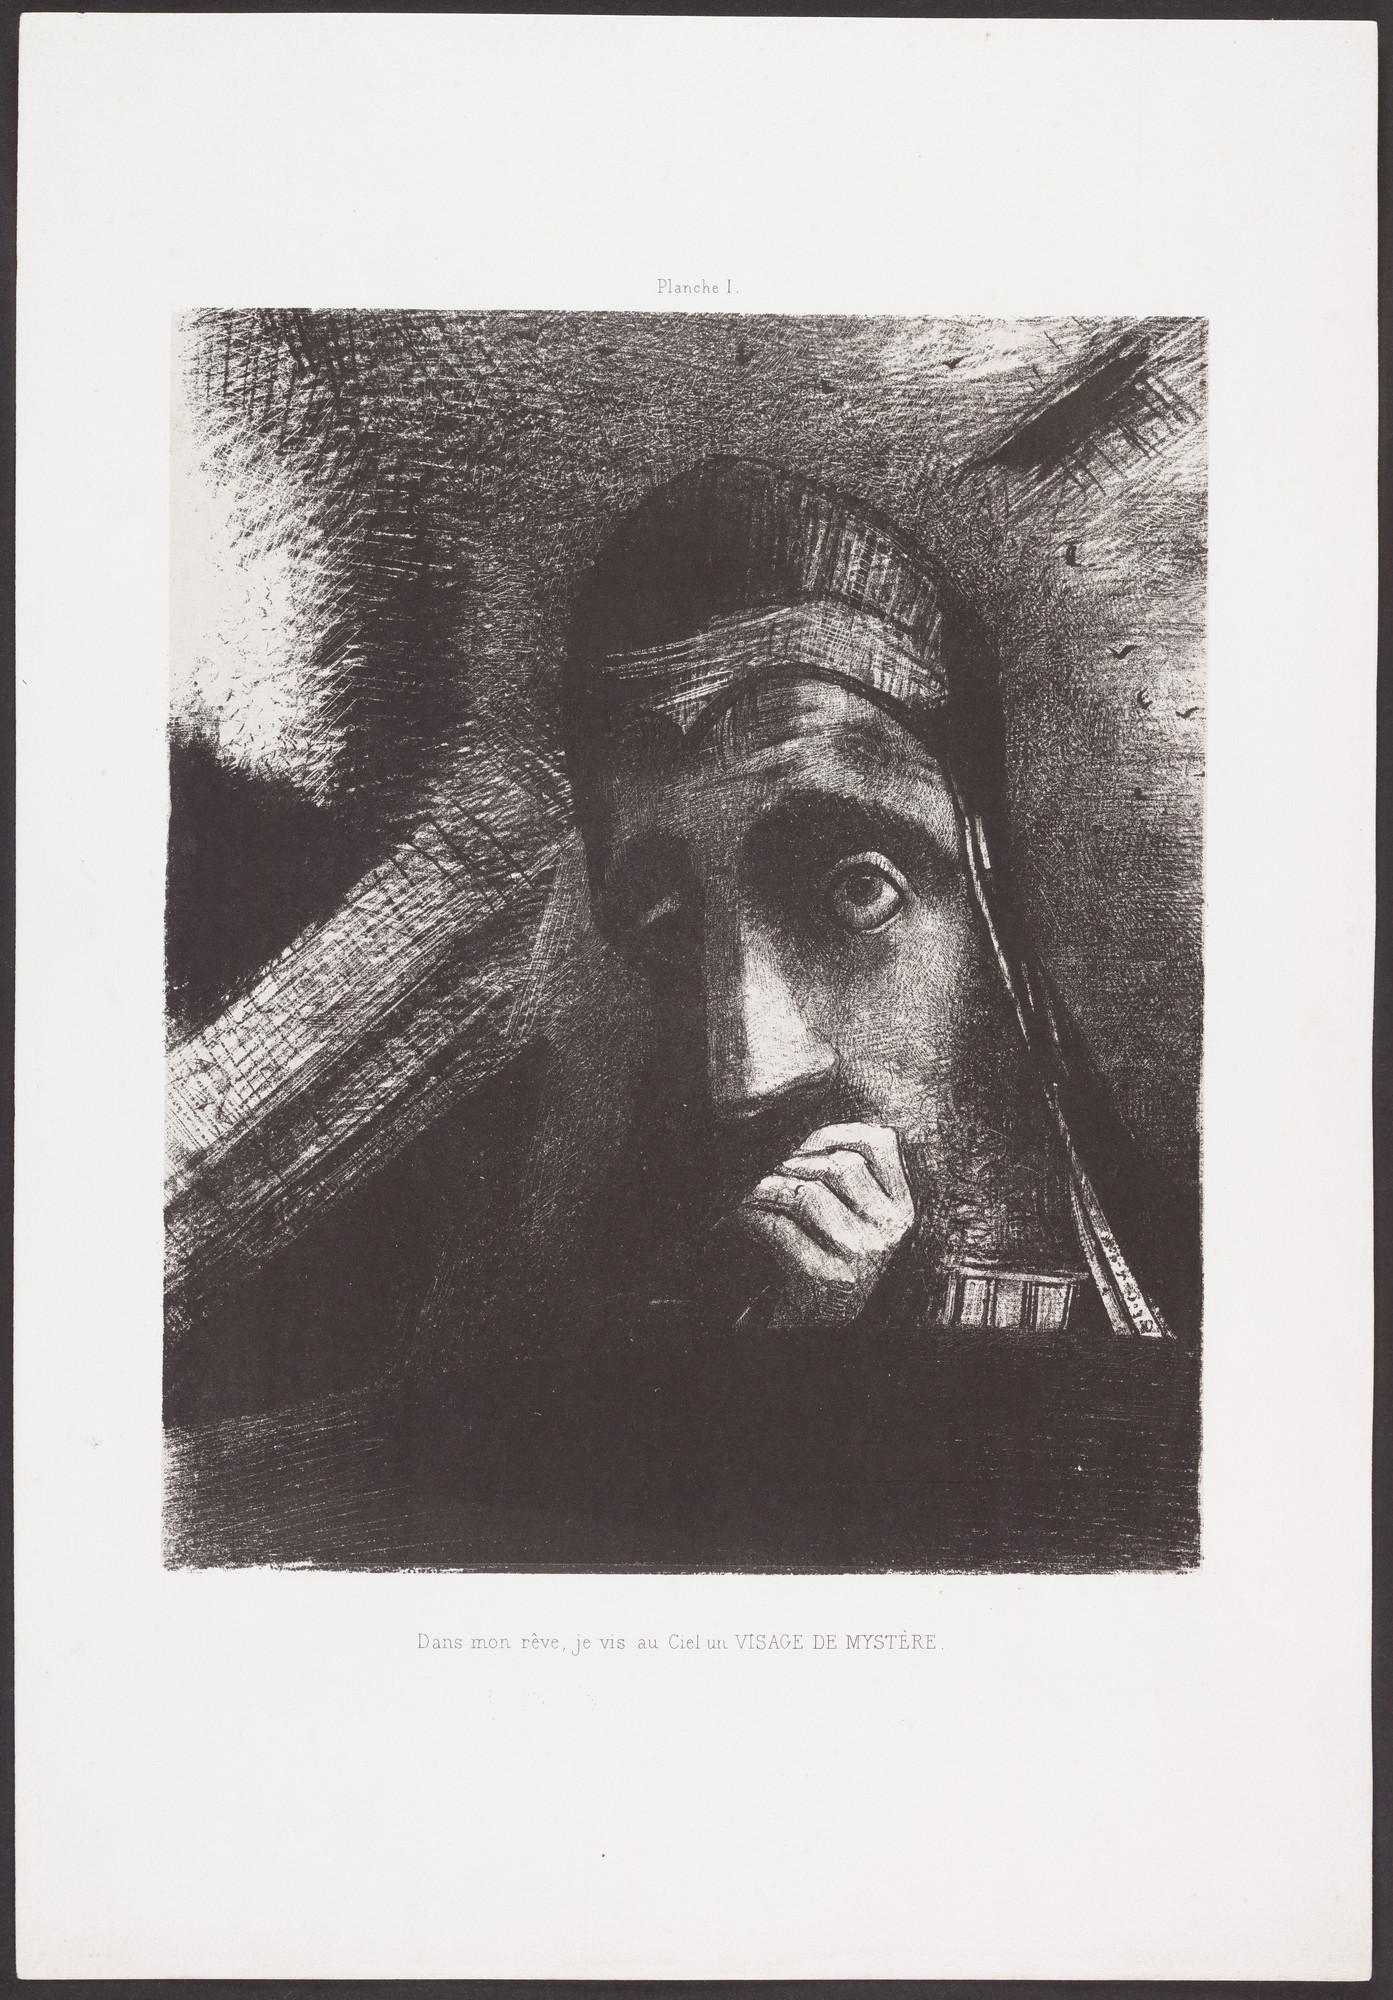 Odilon Redon. In My Dream, I Saw in the Sky a Face of Mystery (Dans mon rêve, je vis au ciel un visage de mystère) from Homage to Goya (Hommage à Goya). 1885